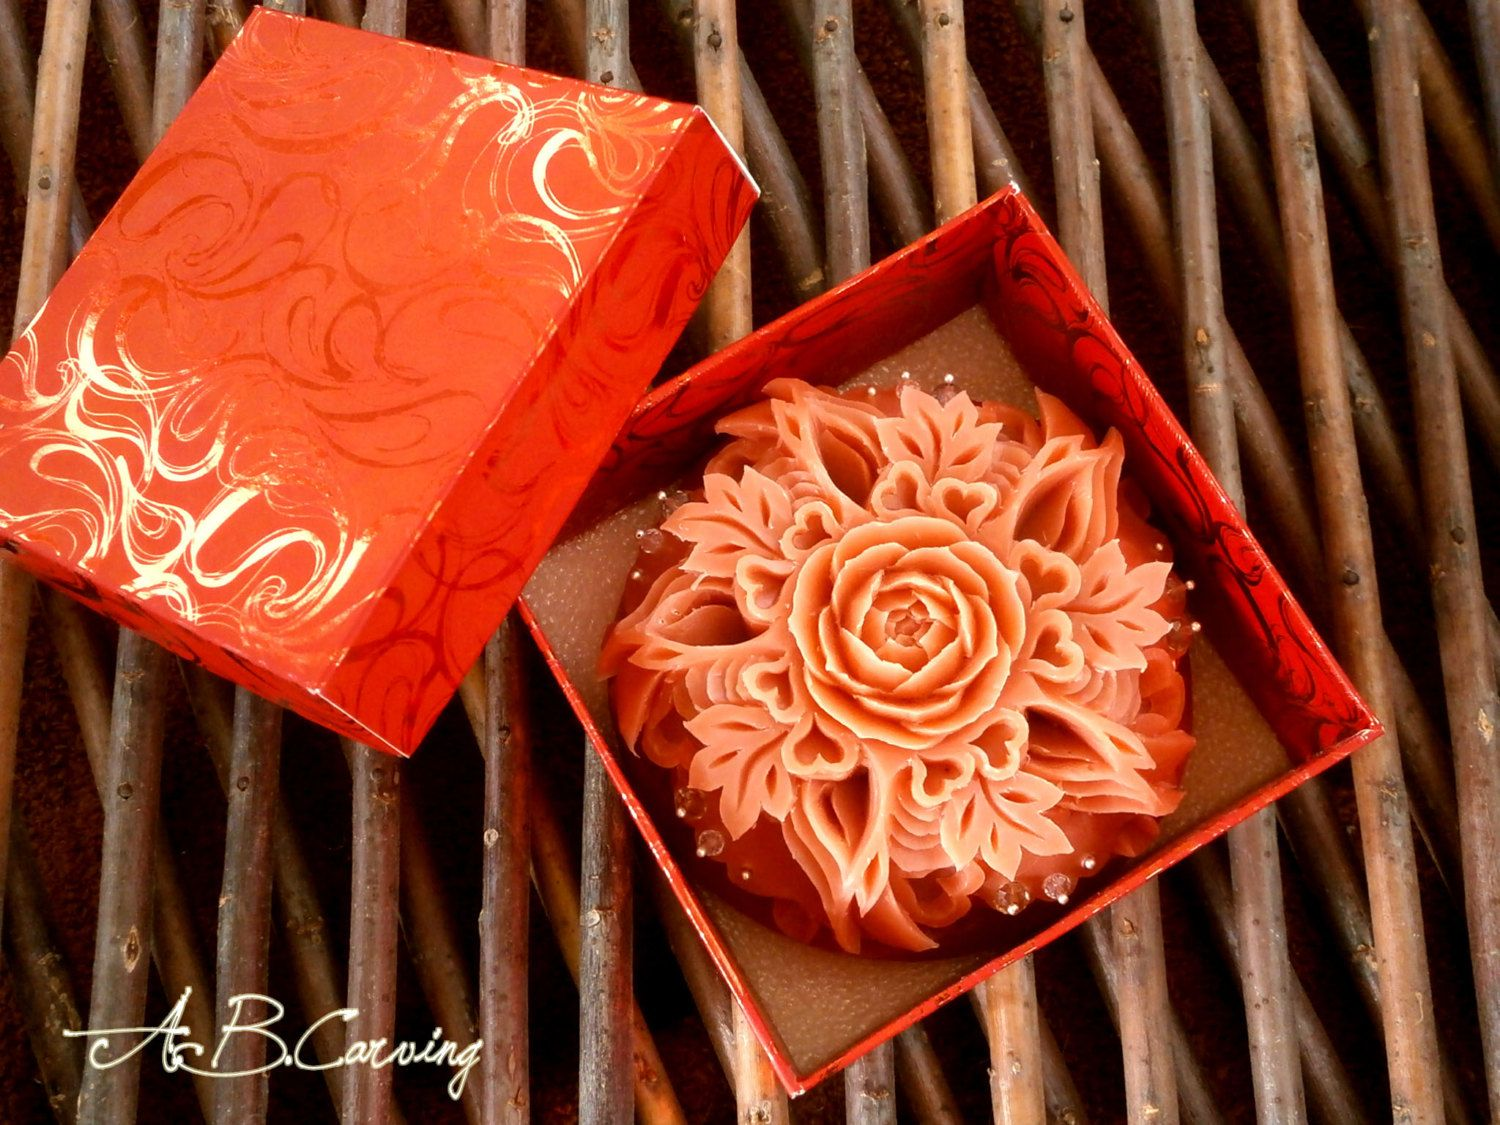 Wedding carving soap hand carved soap flower carving soap